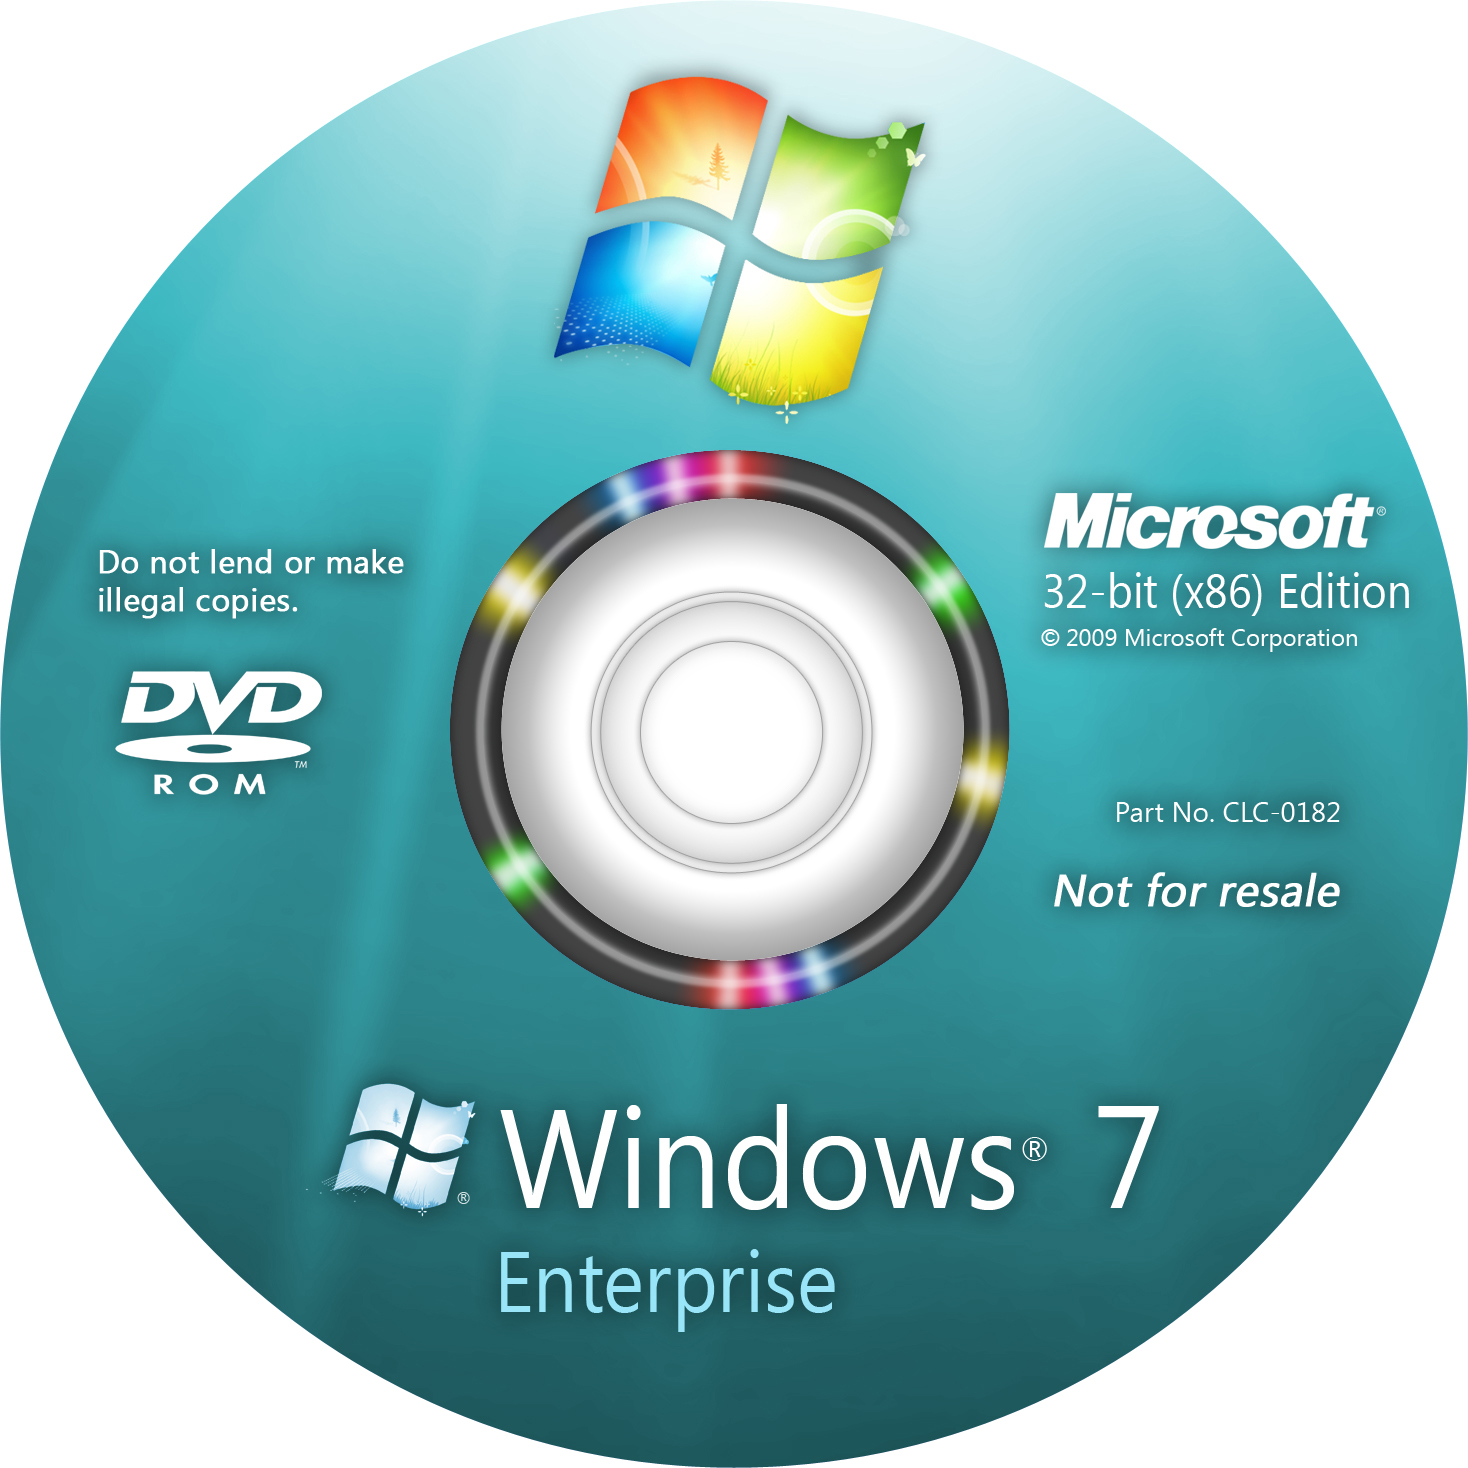 android os for windows 7 32 bit free download